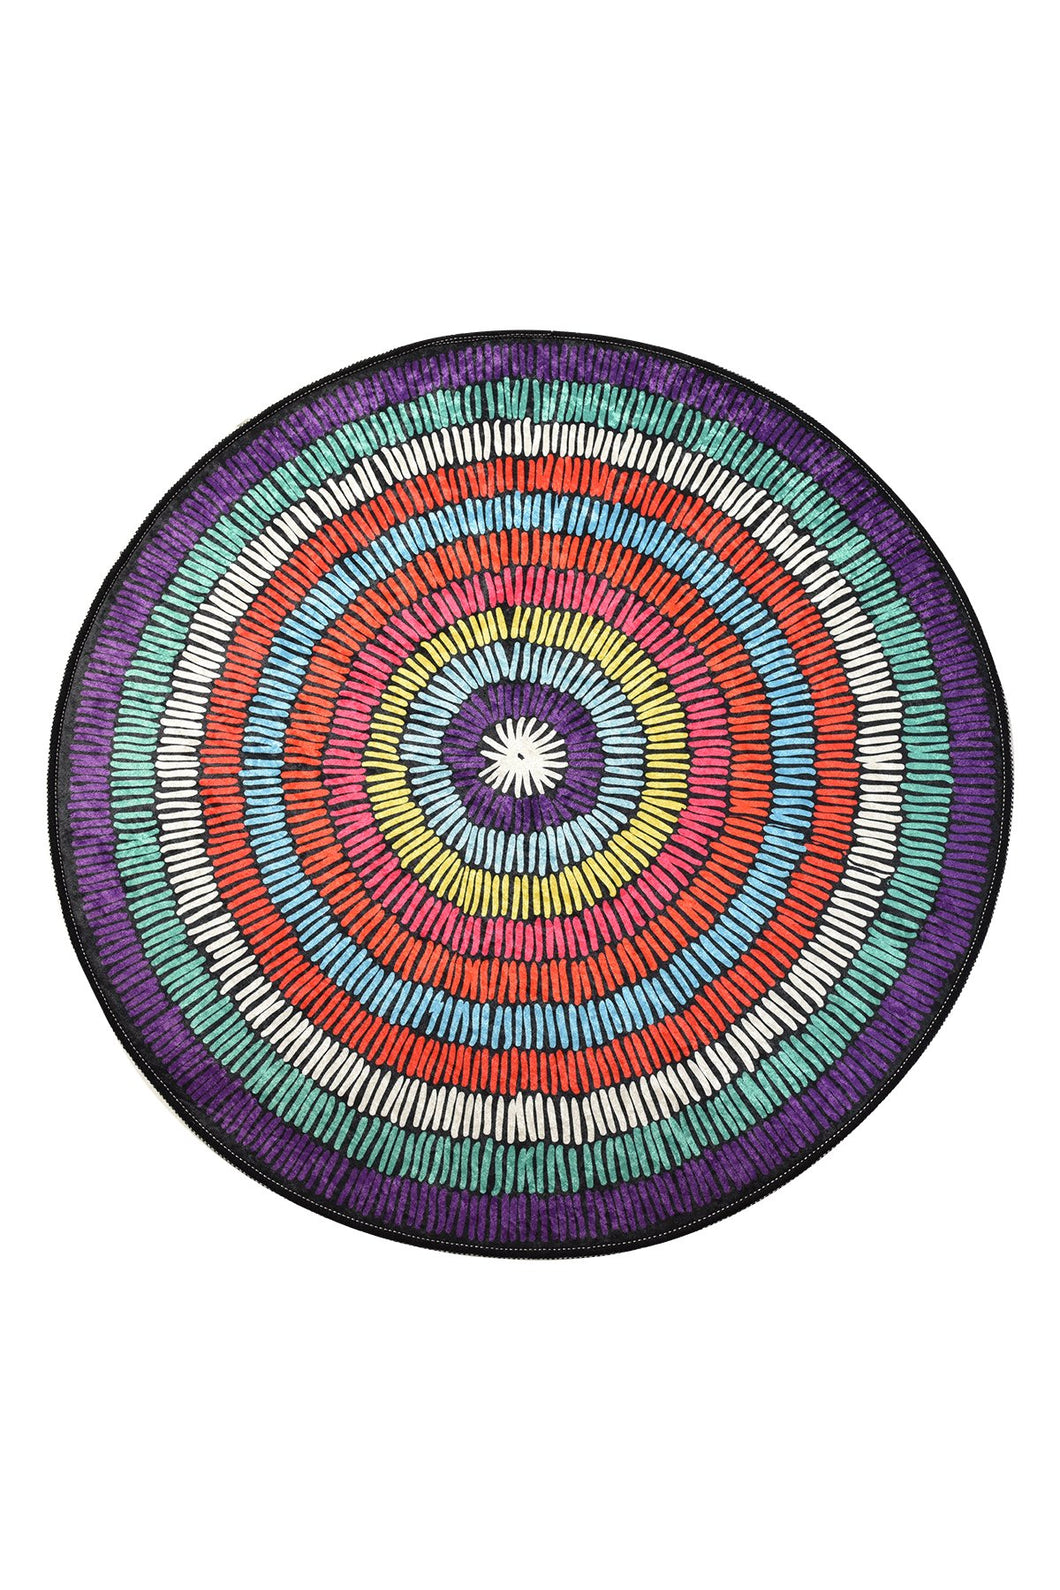 Antdecor Bubble Round Bath Rug Area Rug Round Rug 40